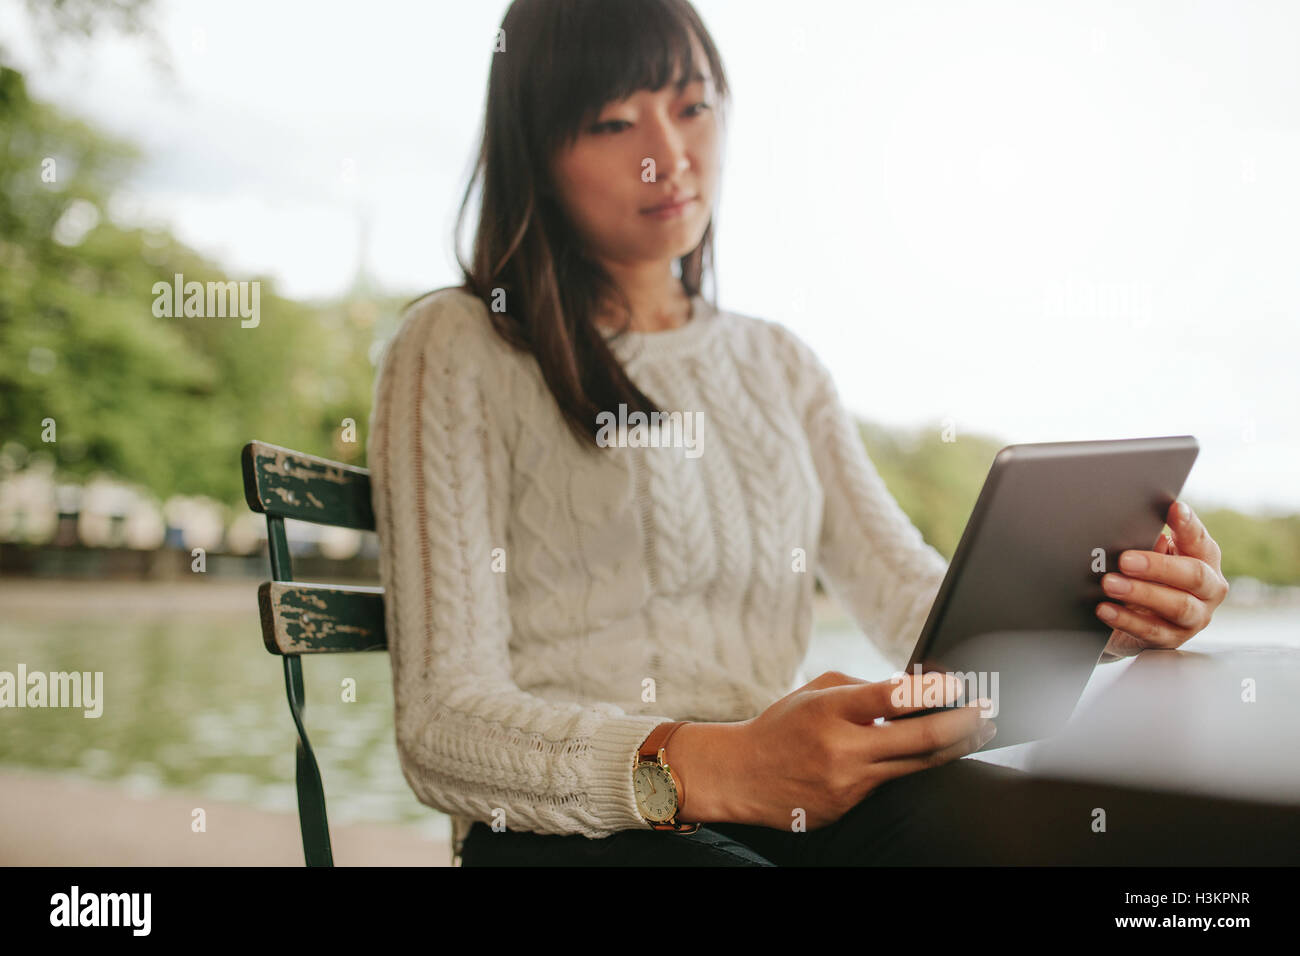 Young woman reading ebook on her digital tablet. Chinese female at outdoor cafe using digital tablet. - Stock Image